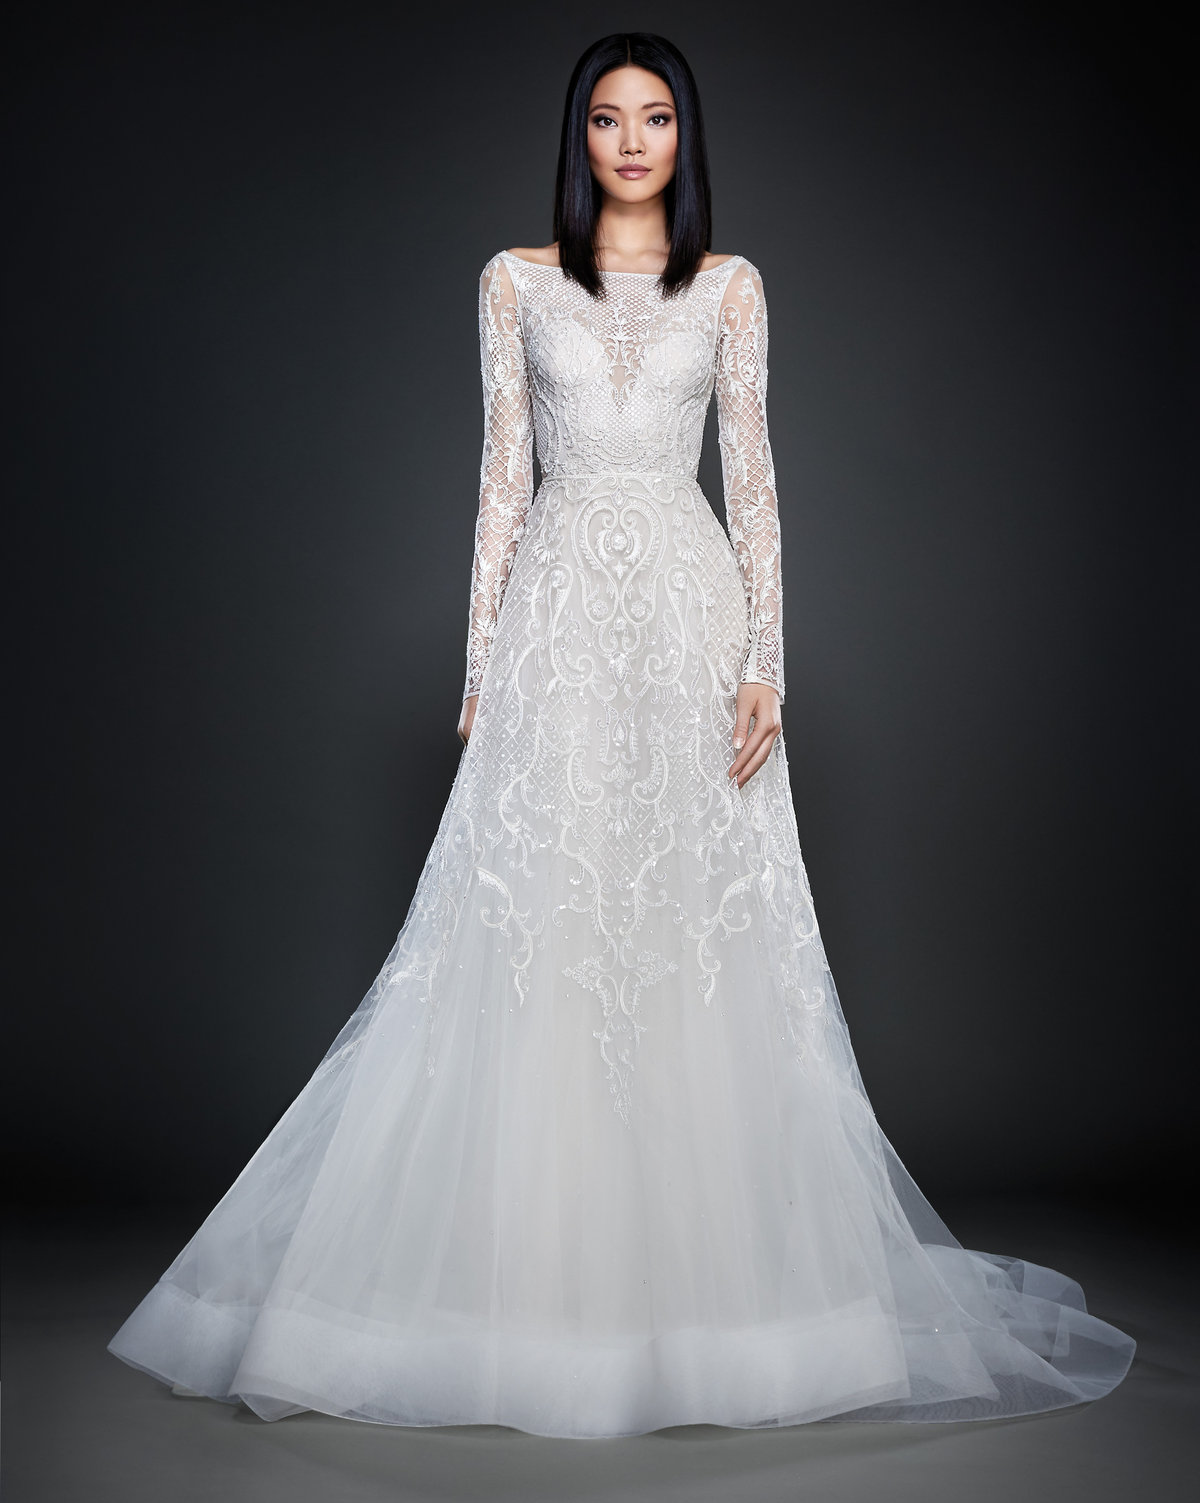 Bridal gowns and wedding dresses by jlm couture style 3709 for Lazaro a line wedding dress